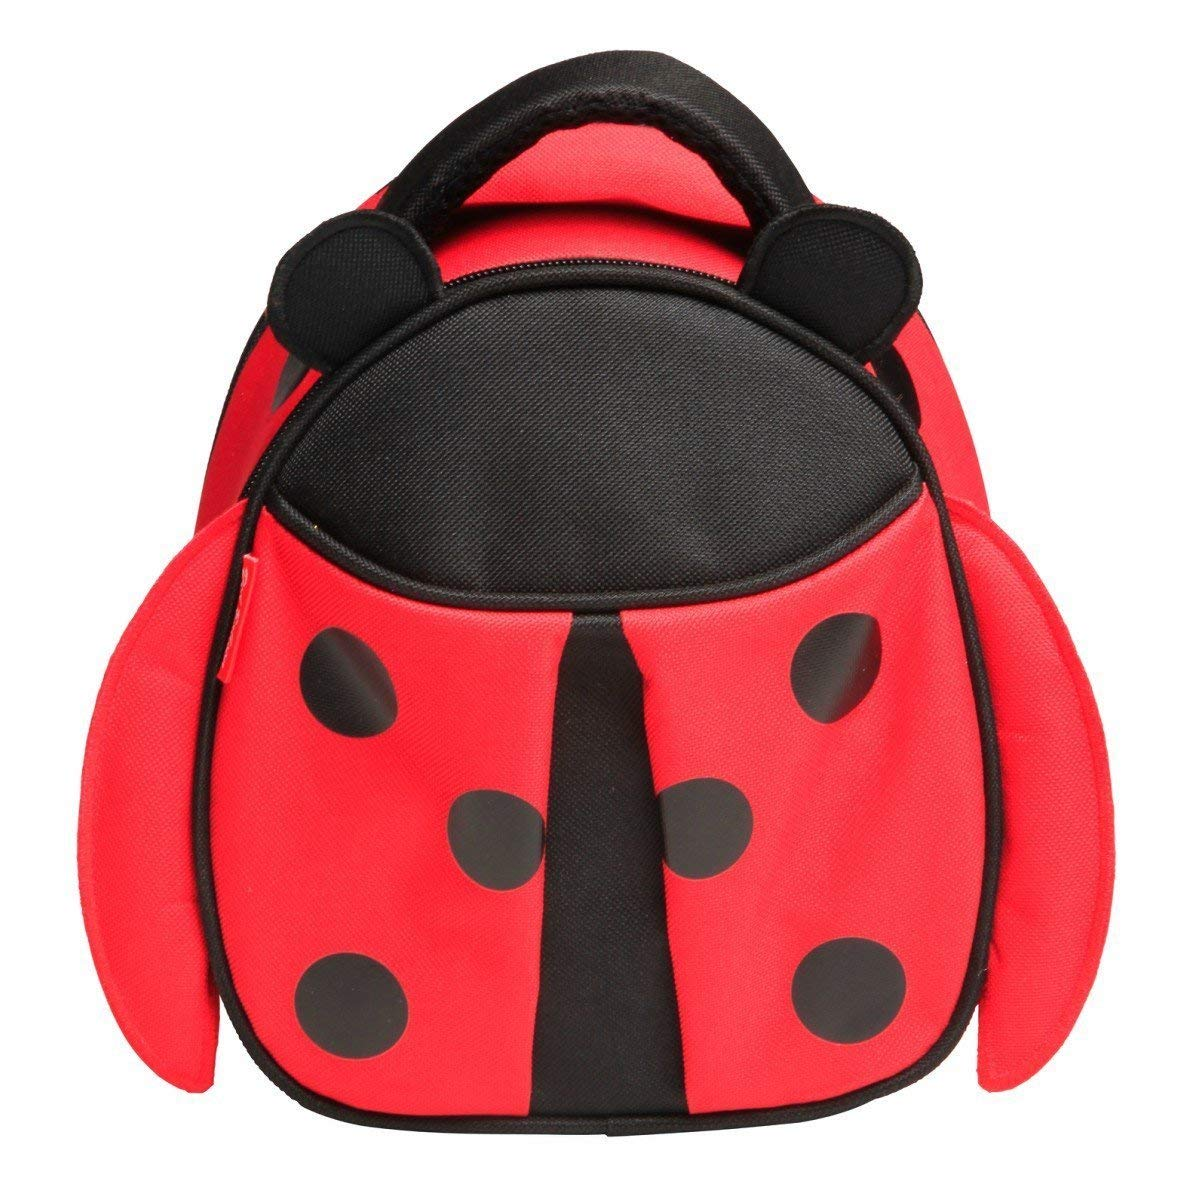 29719a7b9439 Cheap Ladybug Lunch, find Ladybug Lunch deals on line at Alibaba.com